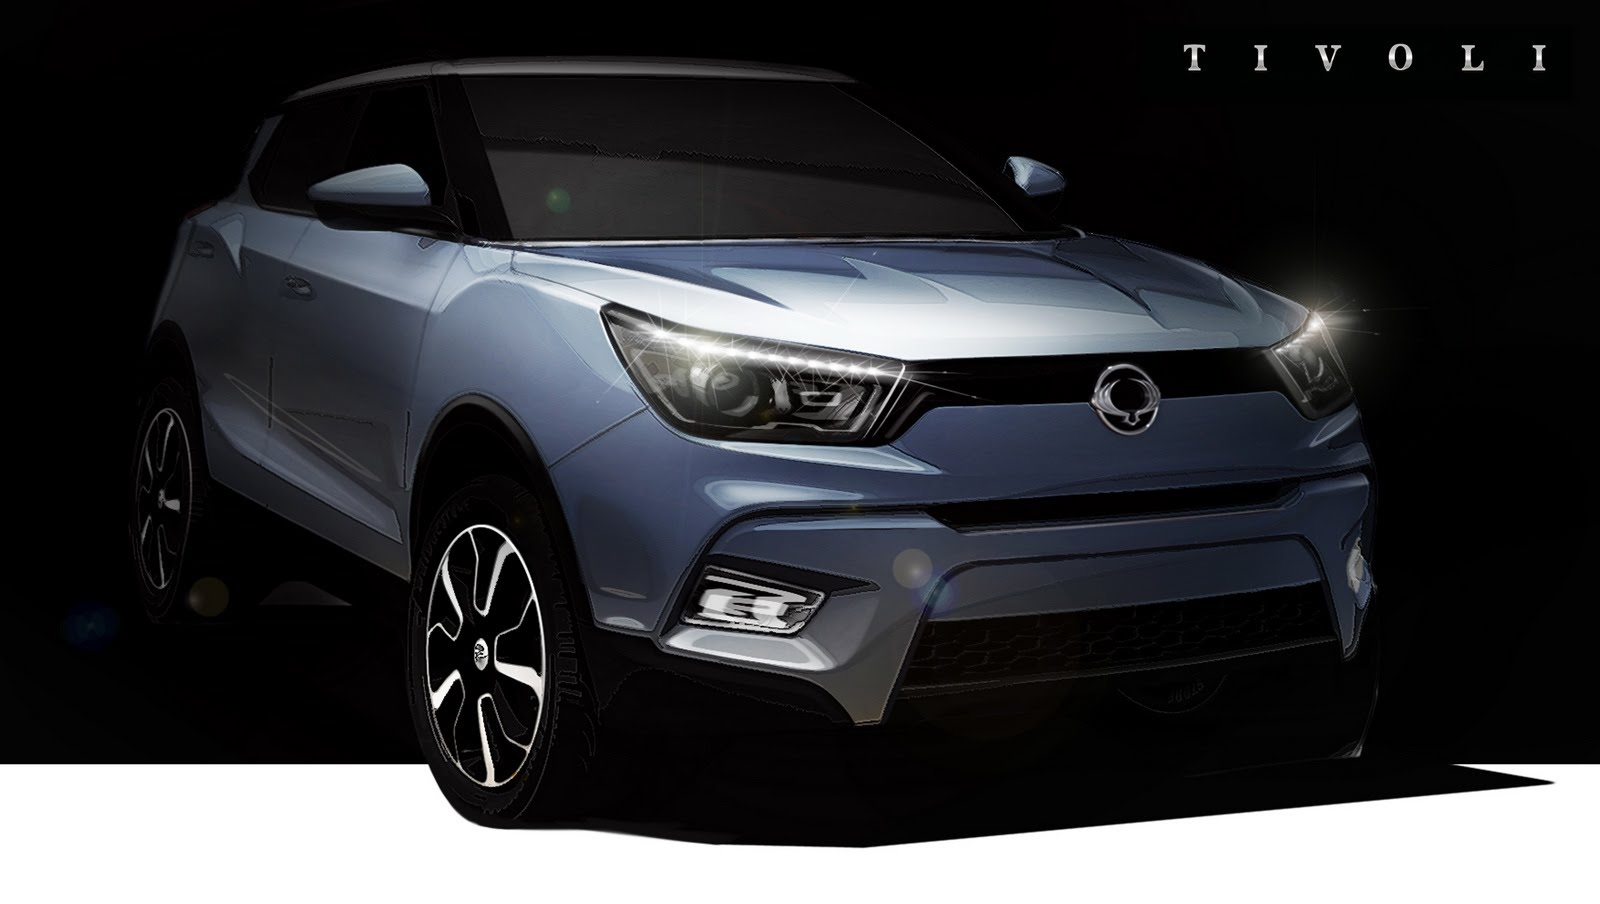 ssangyong actyon 2016 wallpaper